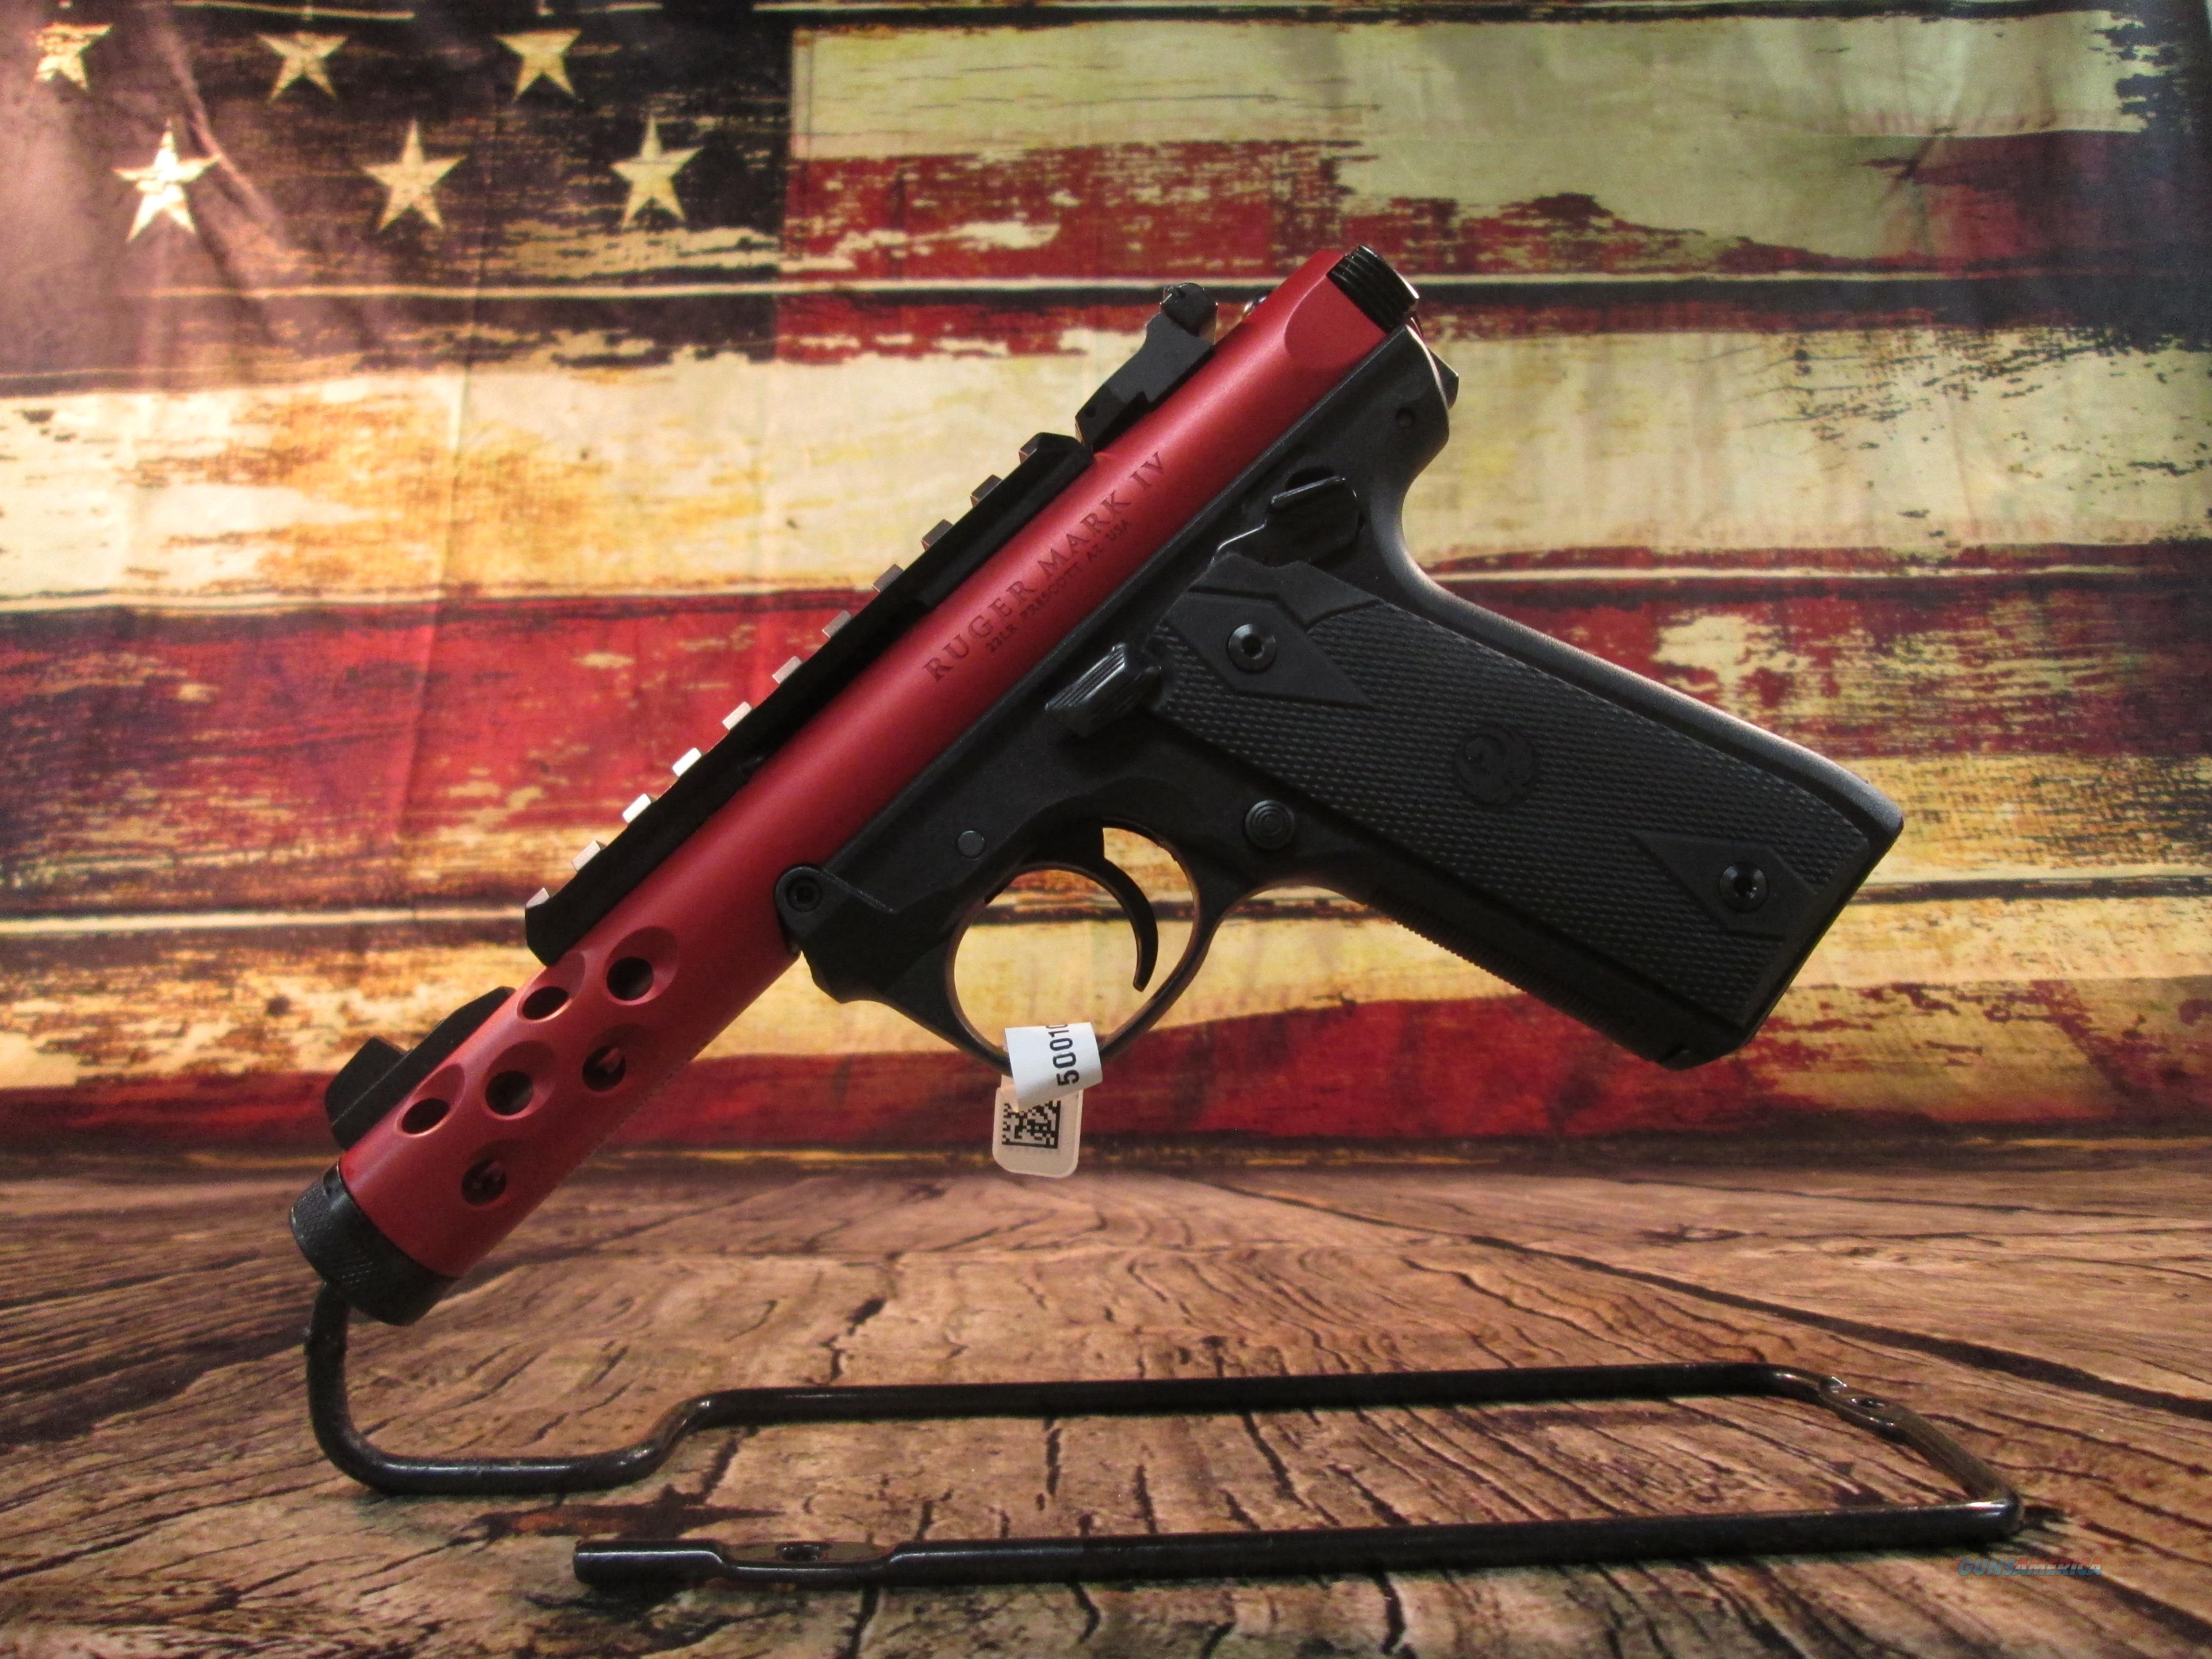 RUGER MKIV 22/45 LITE ANODIZED RED (43910)   Guns > Pistols > Ruger Semi-Auto Pistols > 22/45